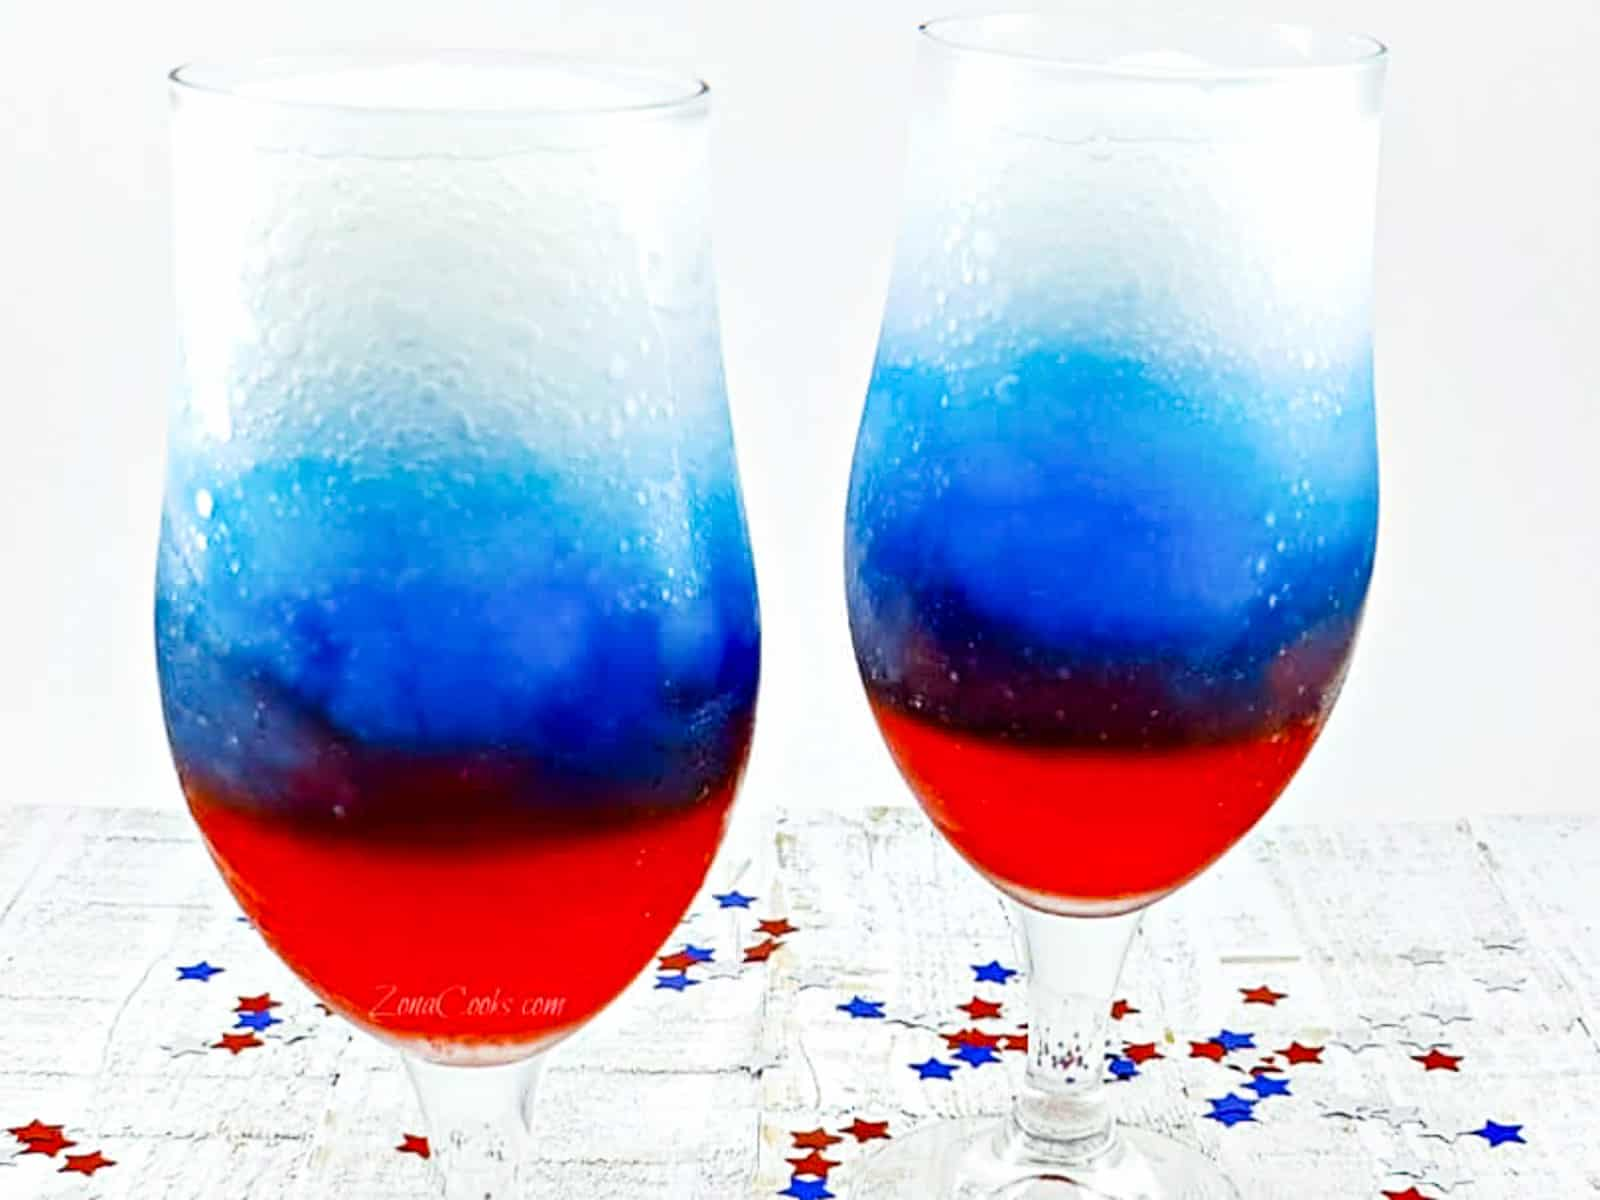 Two glasses of red white and blue drinks on ice in wine goblets.